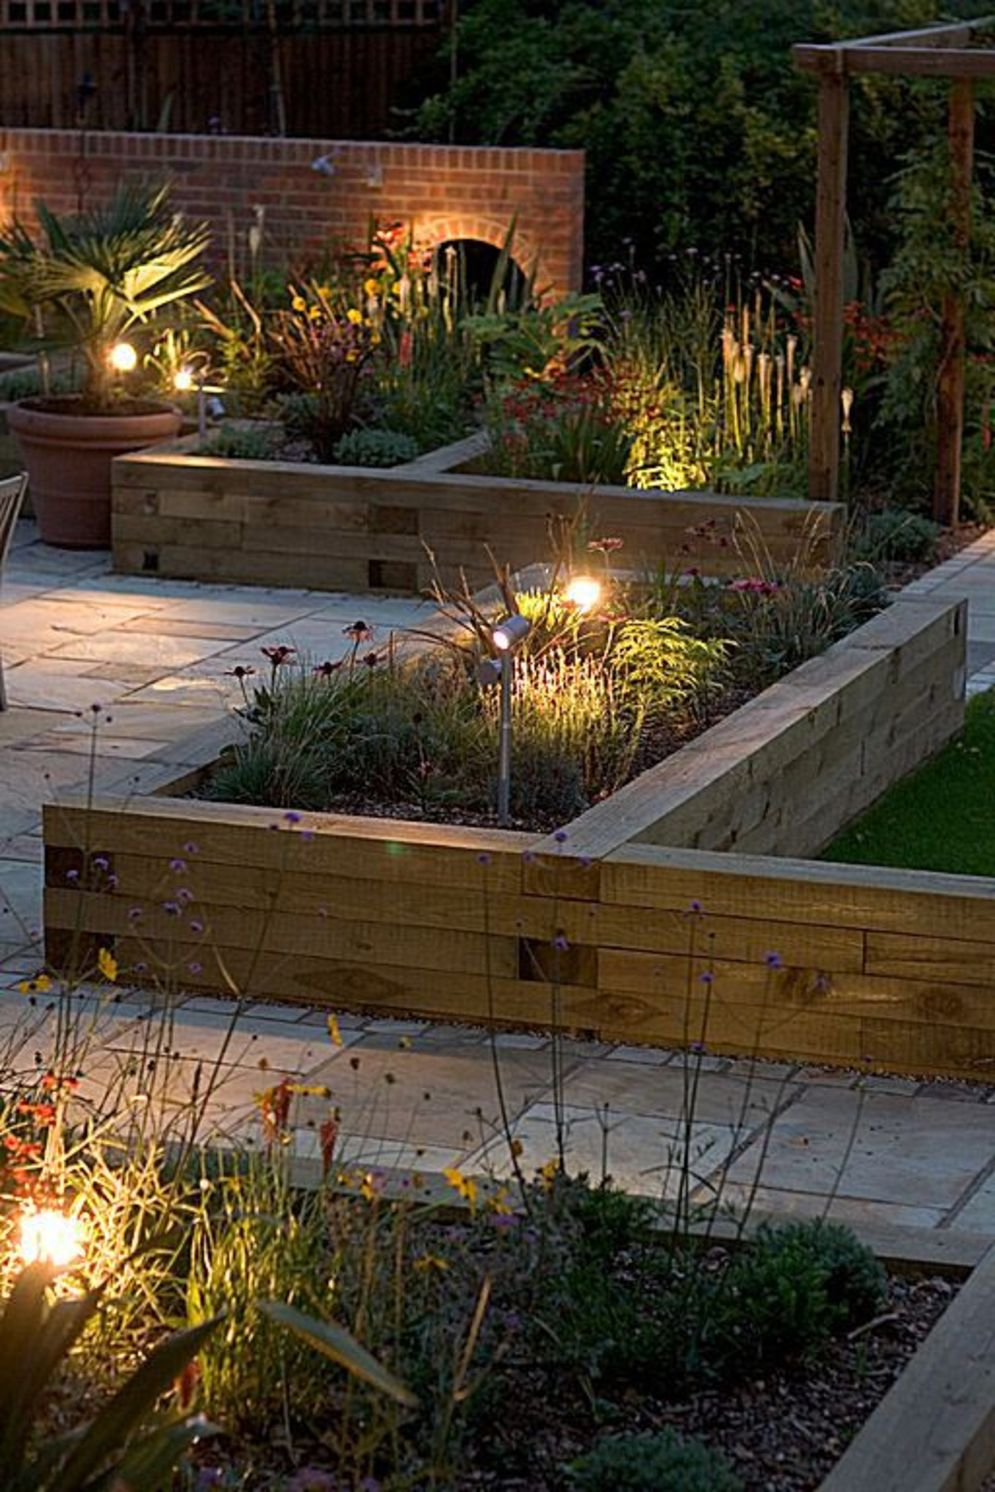 Beautiful garden lighting ideas with ground level ambient light giving luxurious resorts look Image 13